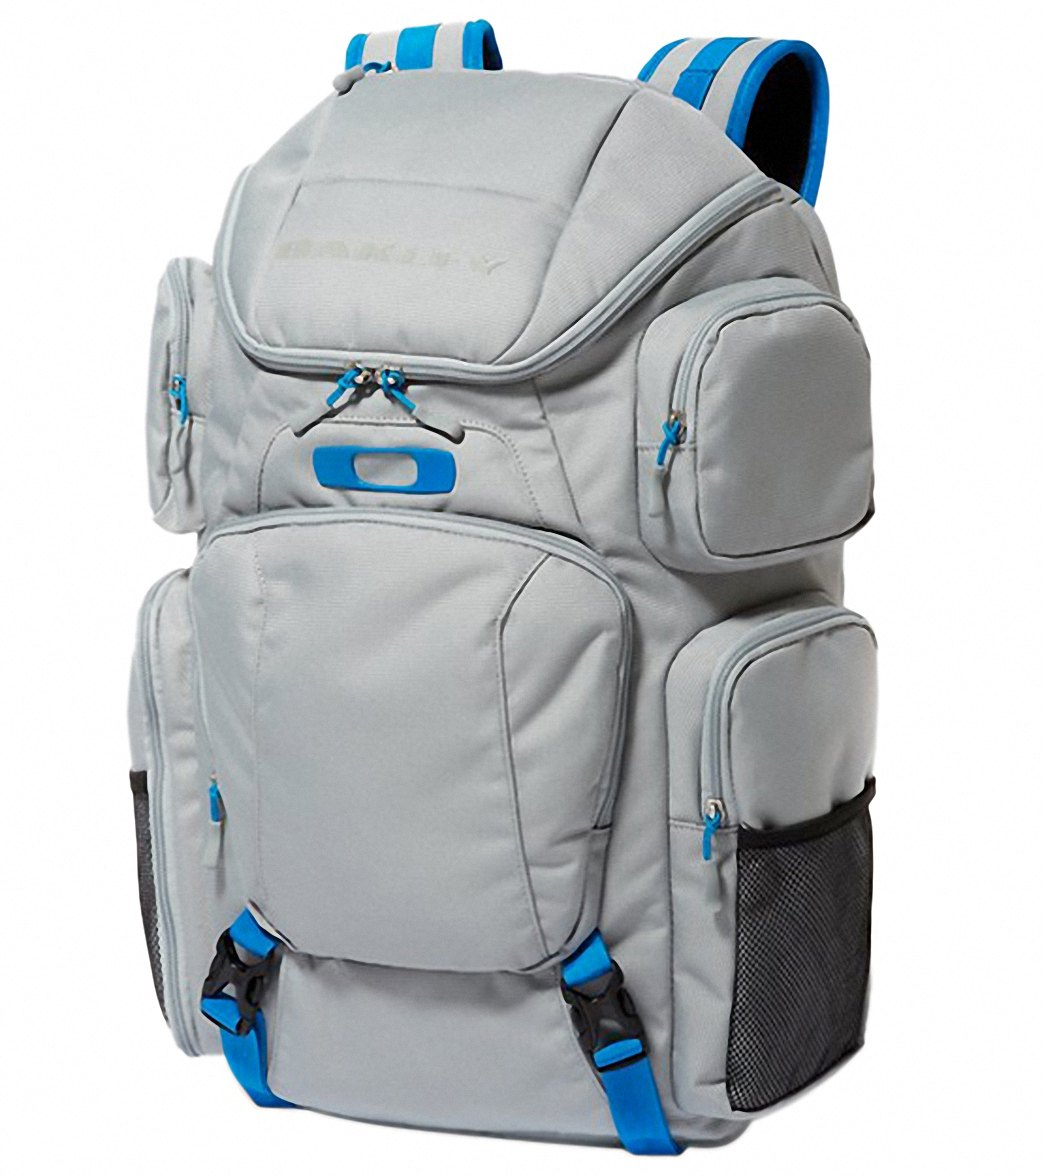 3fbaa57dfe Oakley Blade Wet Dry 40 Bag at SwimOutlet.com - Free Shipping